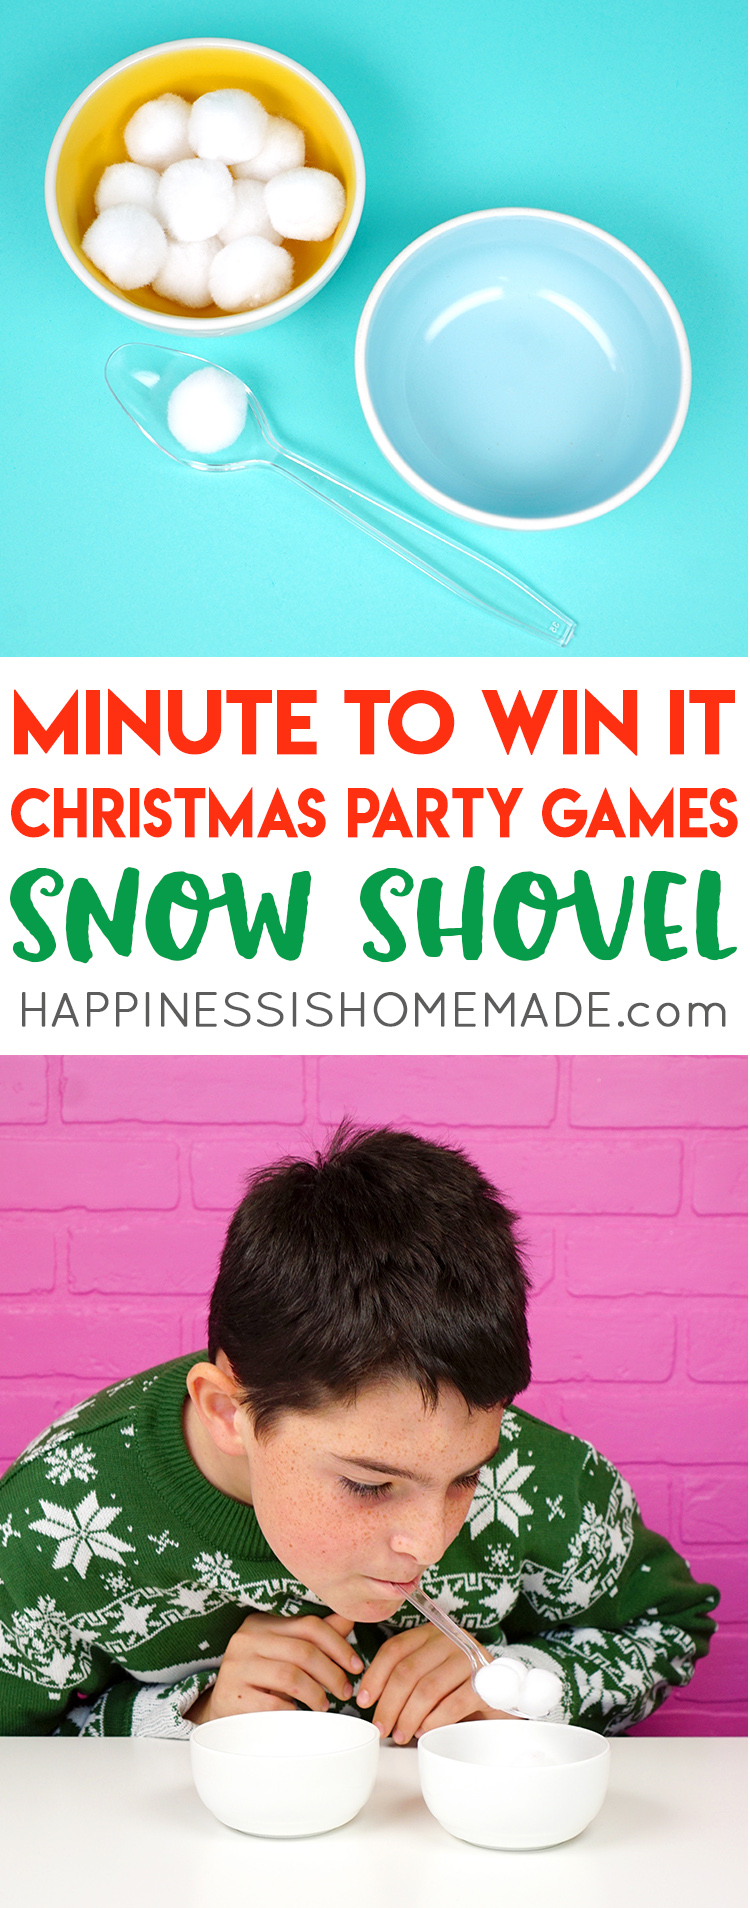 Christmas Minute to Win It Games   Happiness is Homemade SNOW SHOVEL